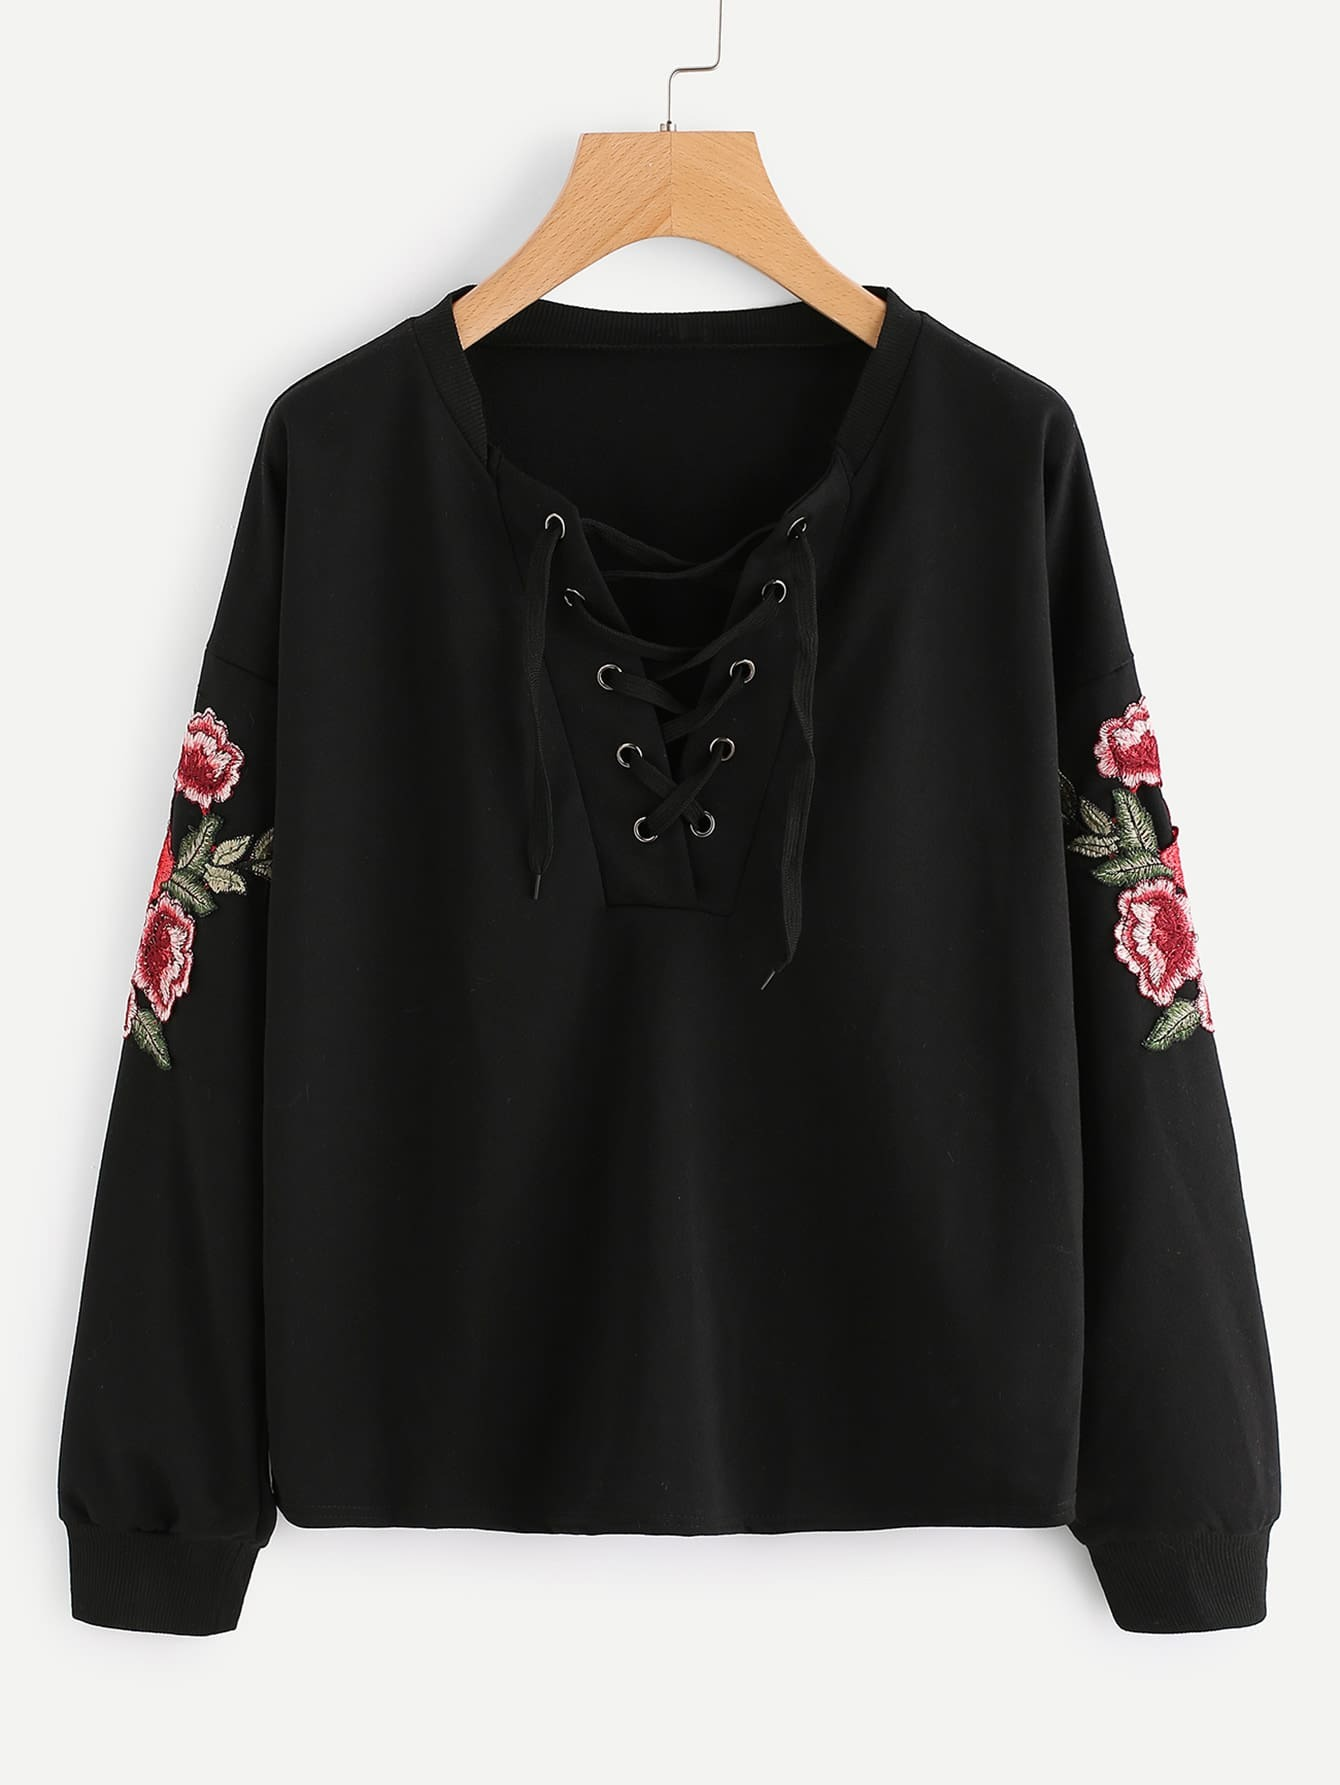 V Neckline Lace Up Embroidered Appliques Pullover